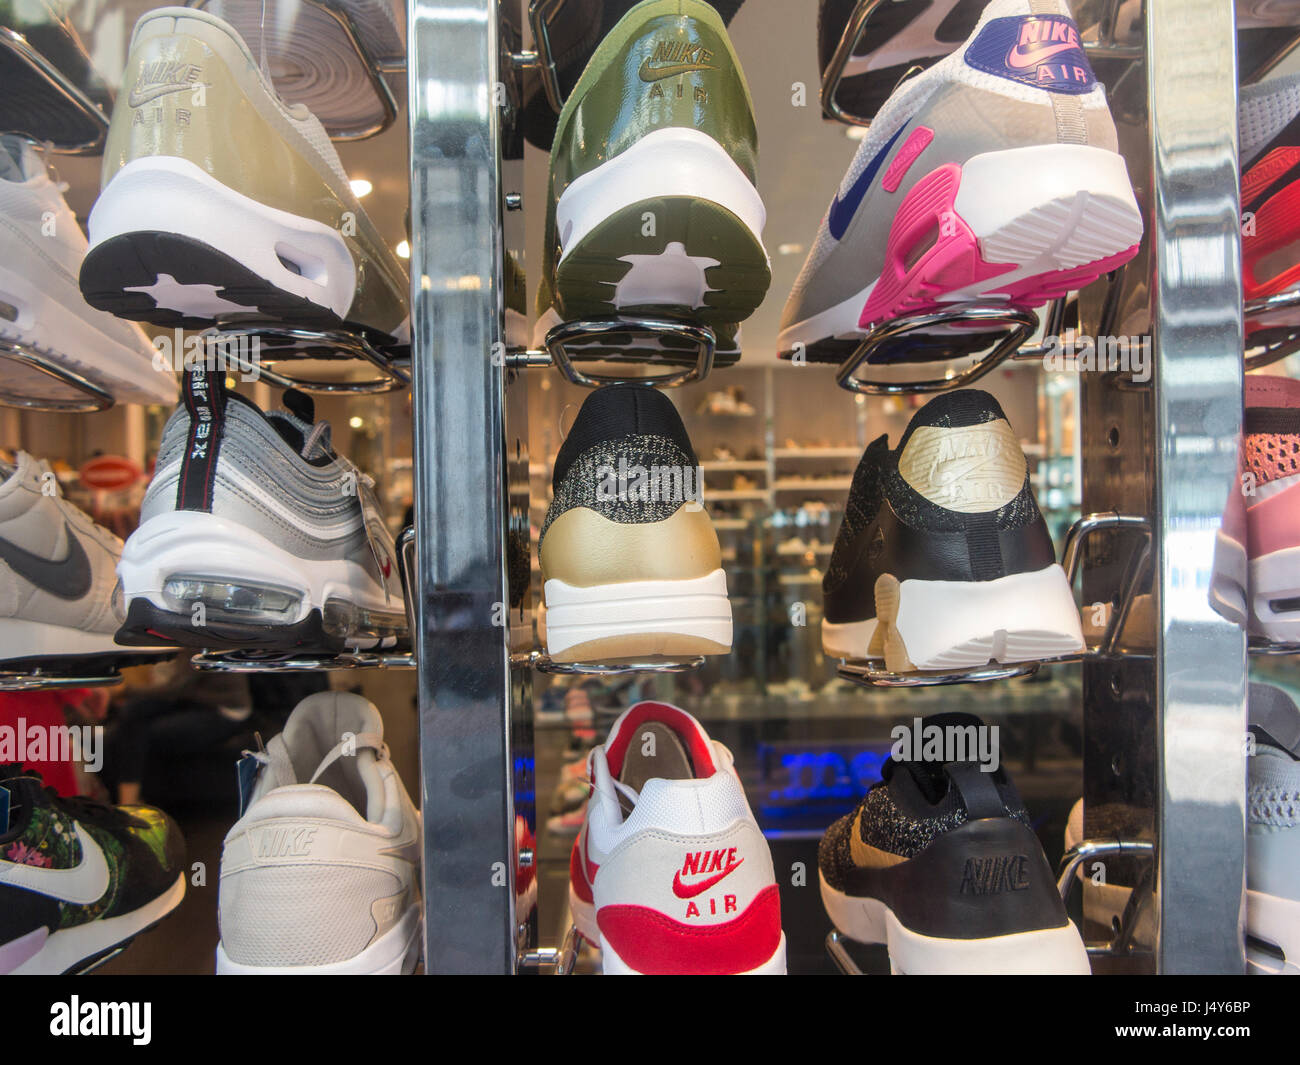 Nike Trainers Immagini e Fotos Stock Alamy